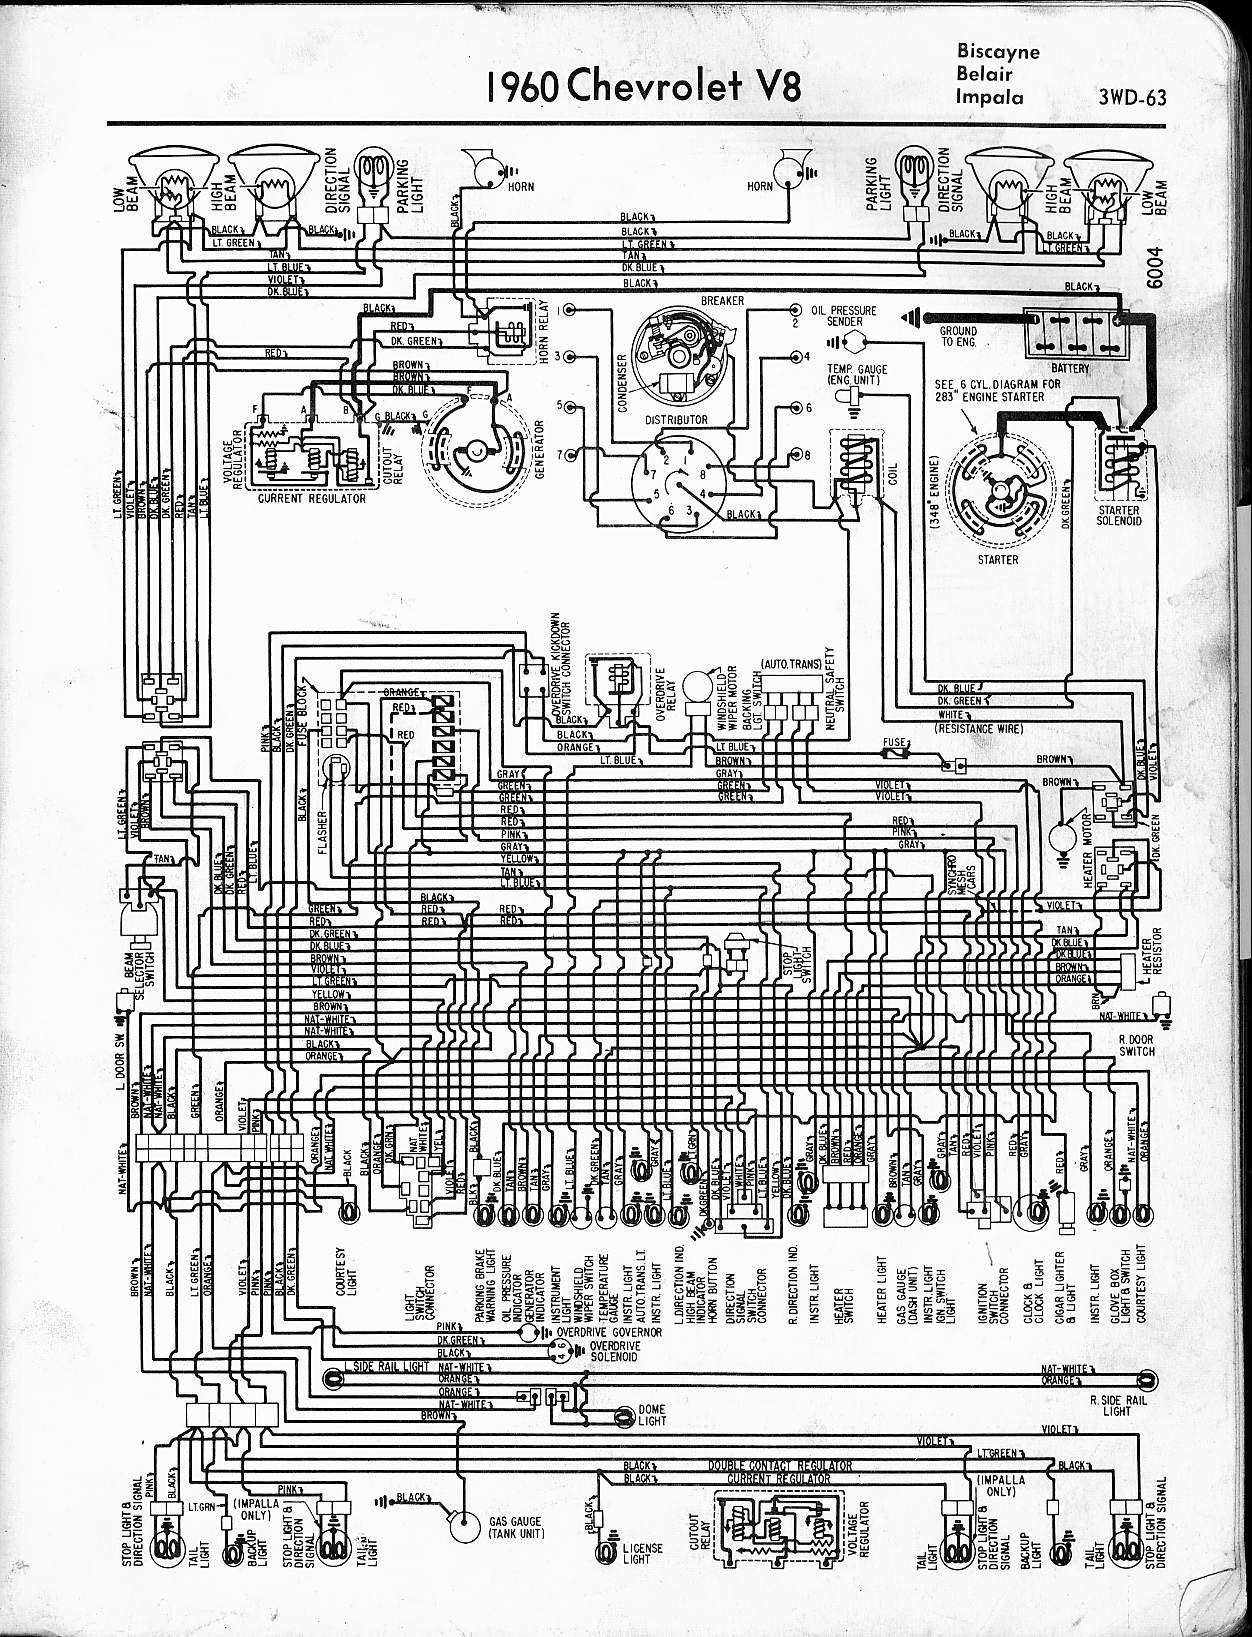 1985 Chevy Truck Wiring Diagram | Wiring Diagram Image